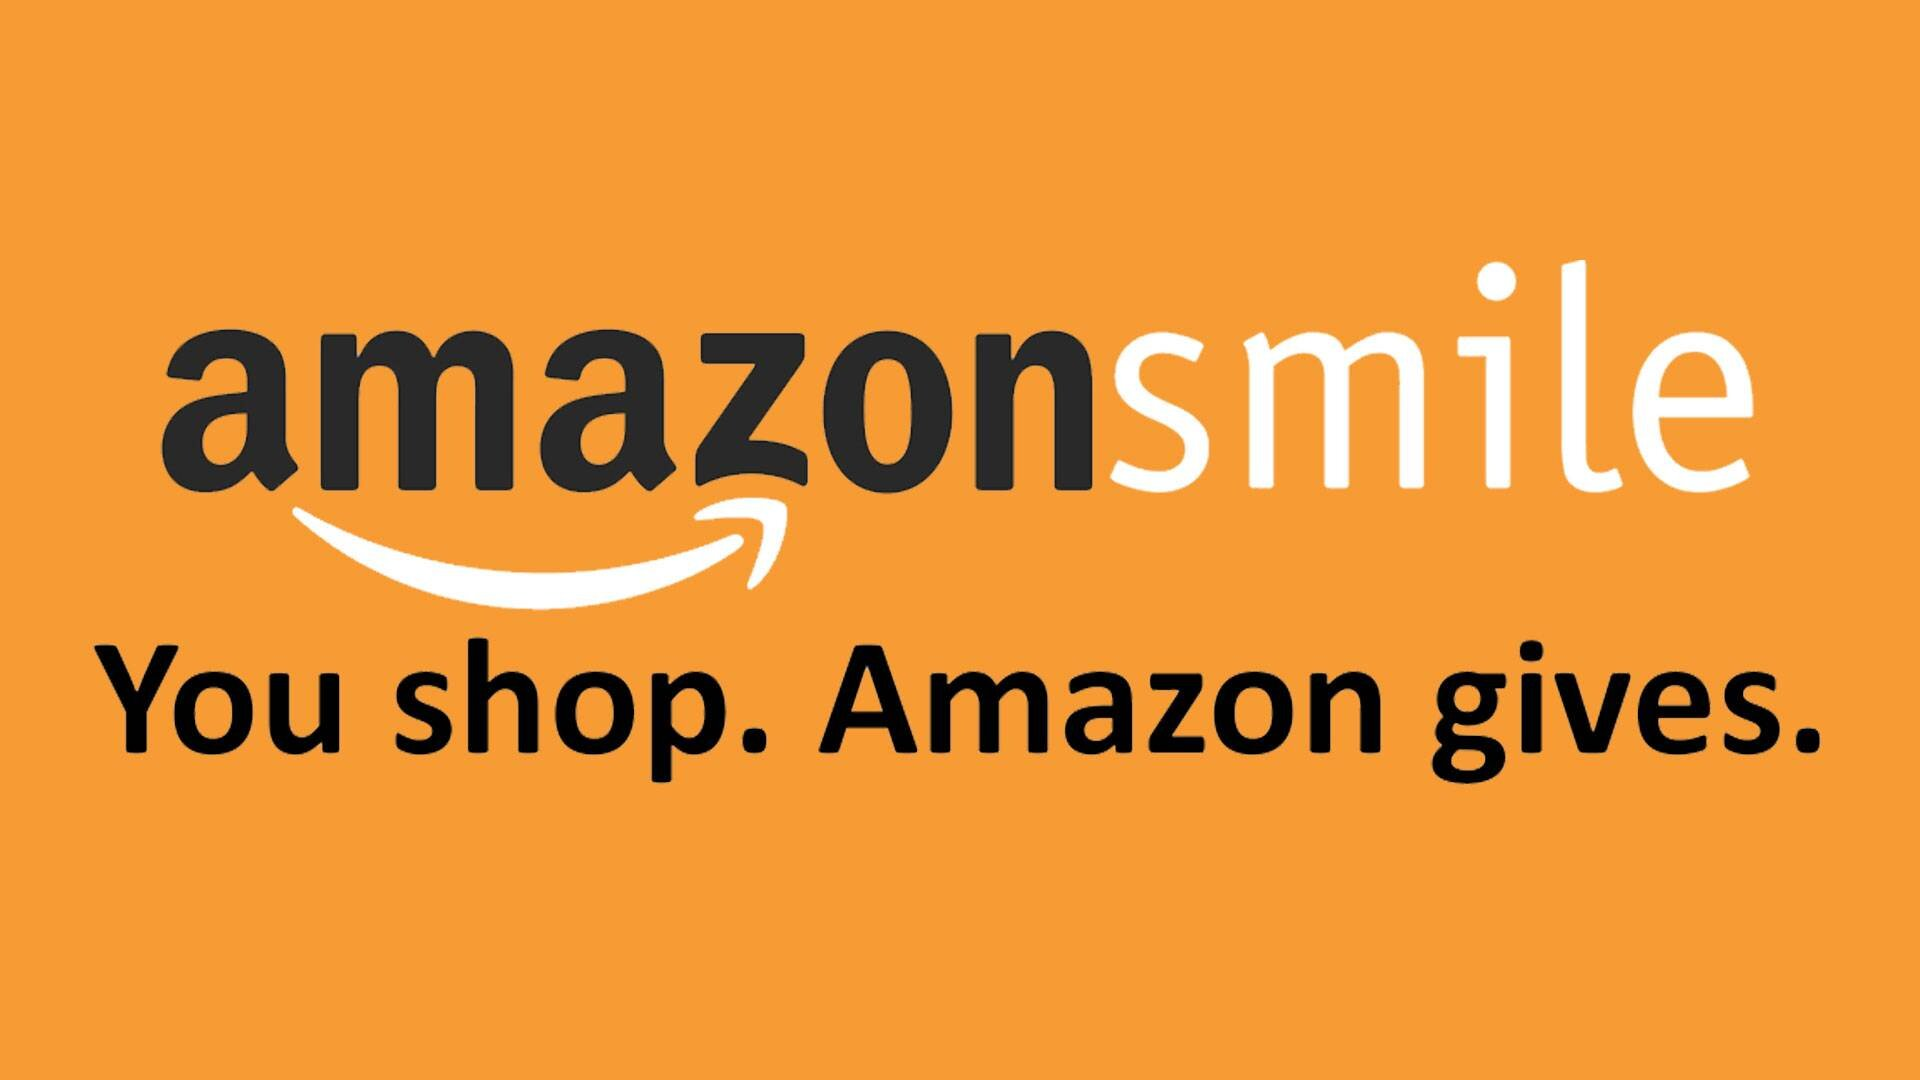 Support us when you shop on Amazon with Amazon Smile